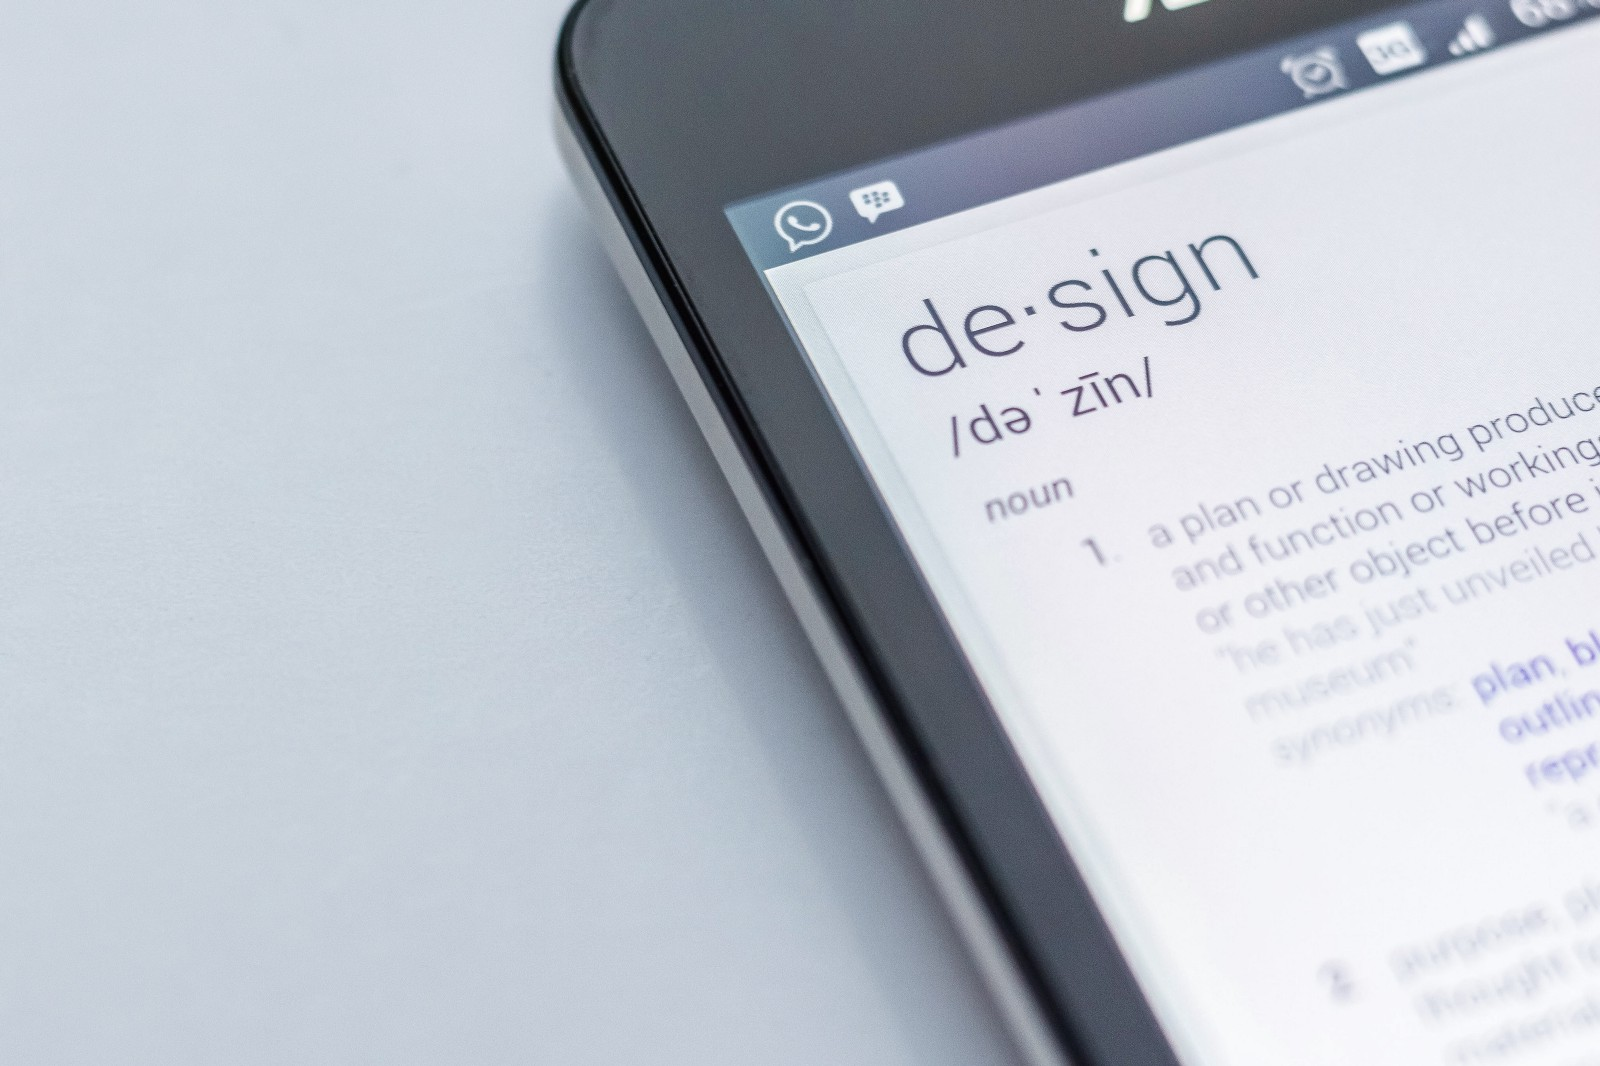 /10-product-design-themes-that-will-improve-your-products-user-adoption-your-team-s-design-process-a3735a1d07b7 feature image